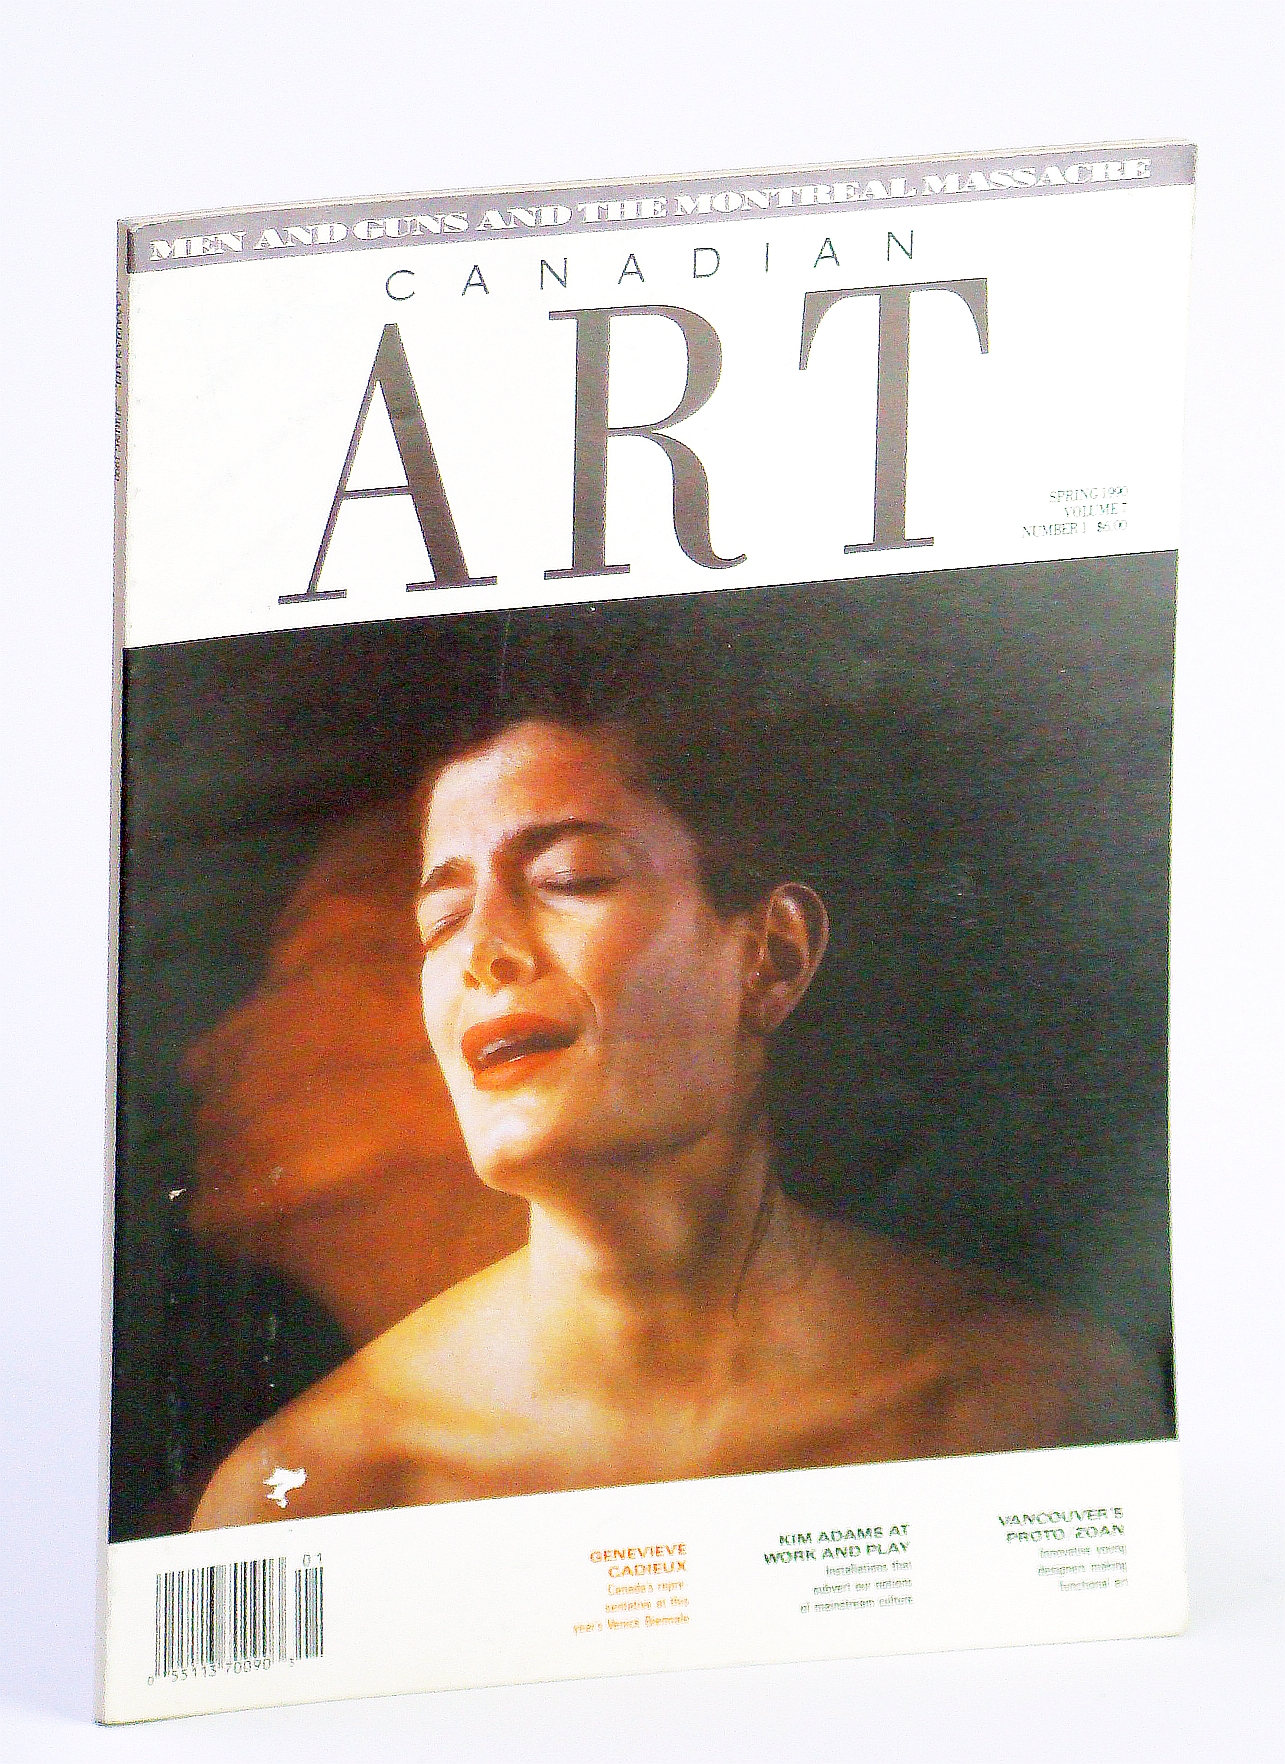 Image for Canadian Art (Magazine), Spring 1990, Volume 7, Number 1 - Genevieve Cadieux / Julie Voyce